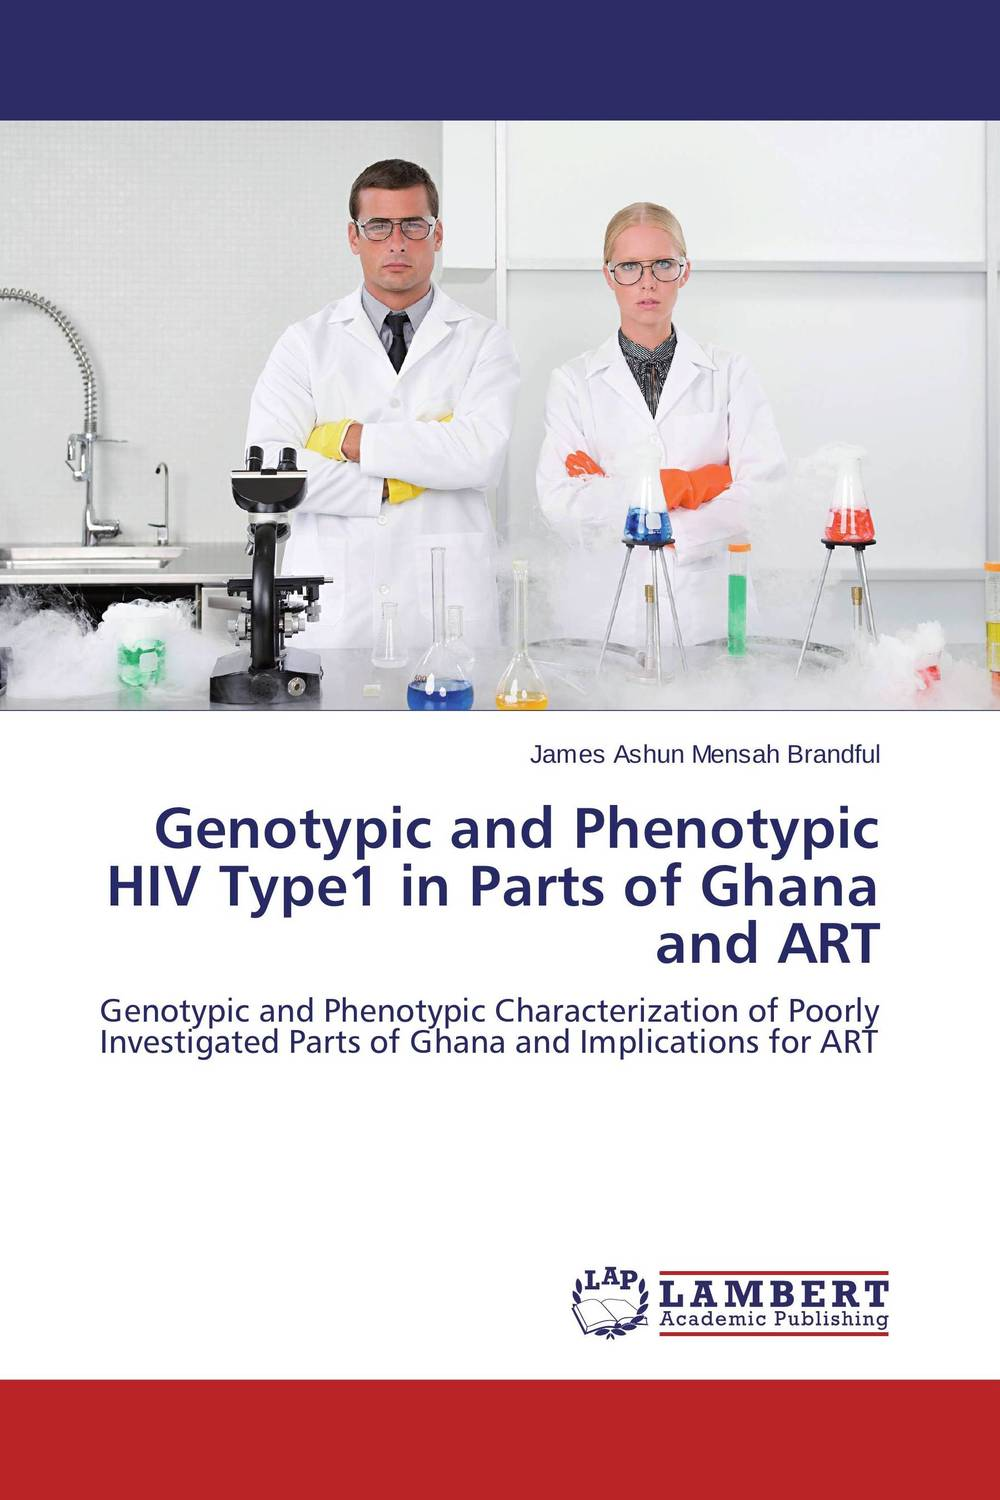 Genotypic and Phenotypic HIV Type1 in Parts of Ghana and ART